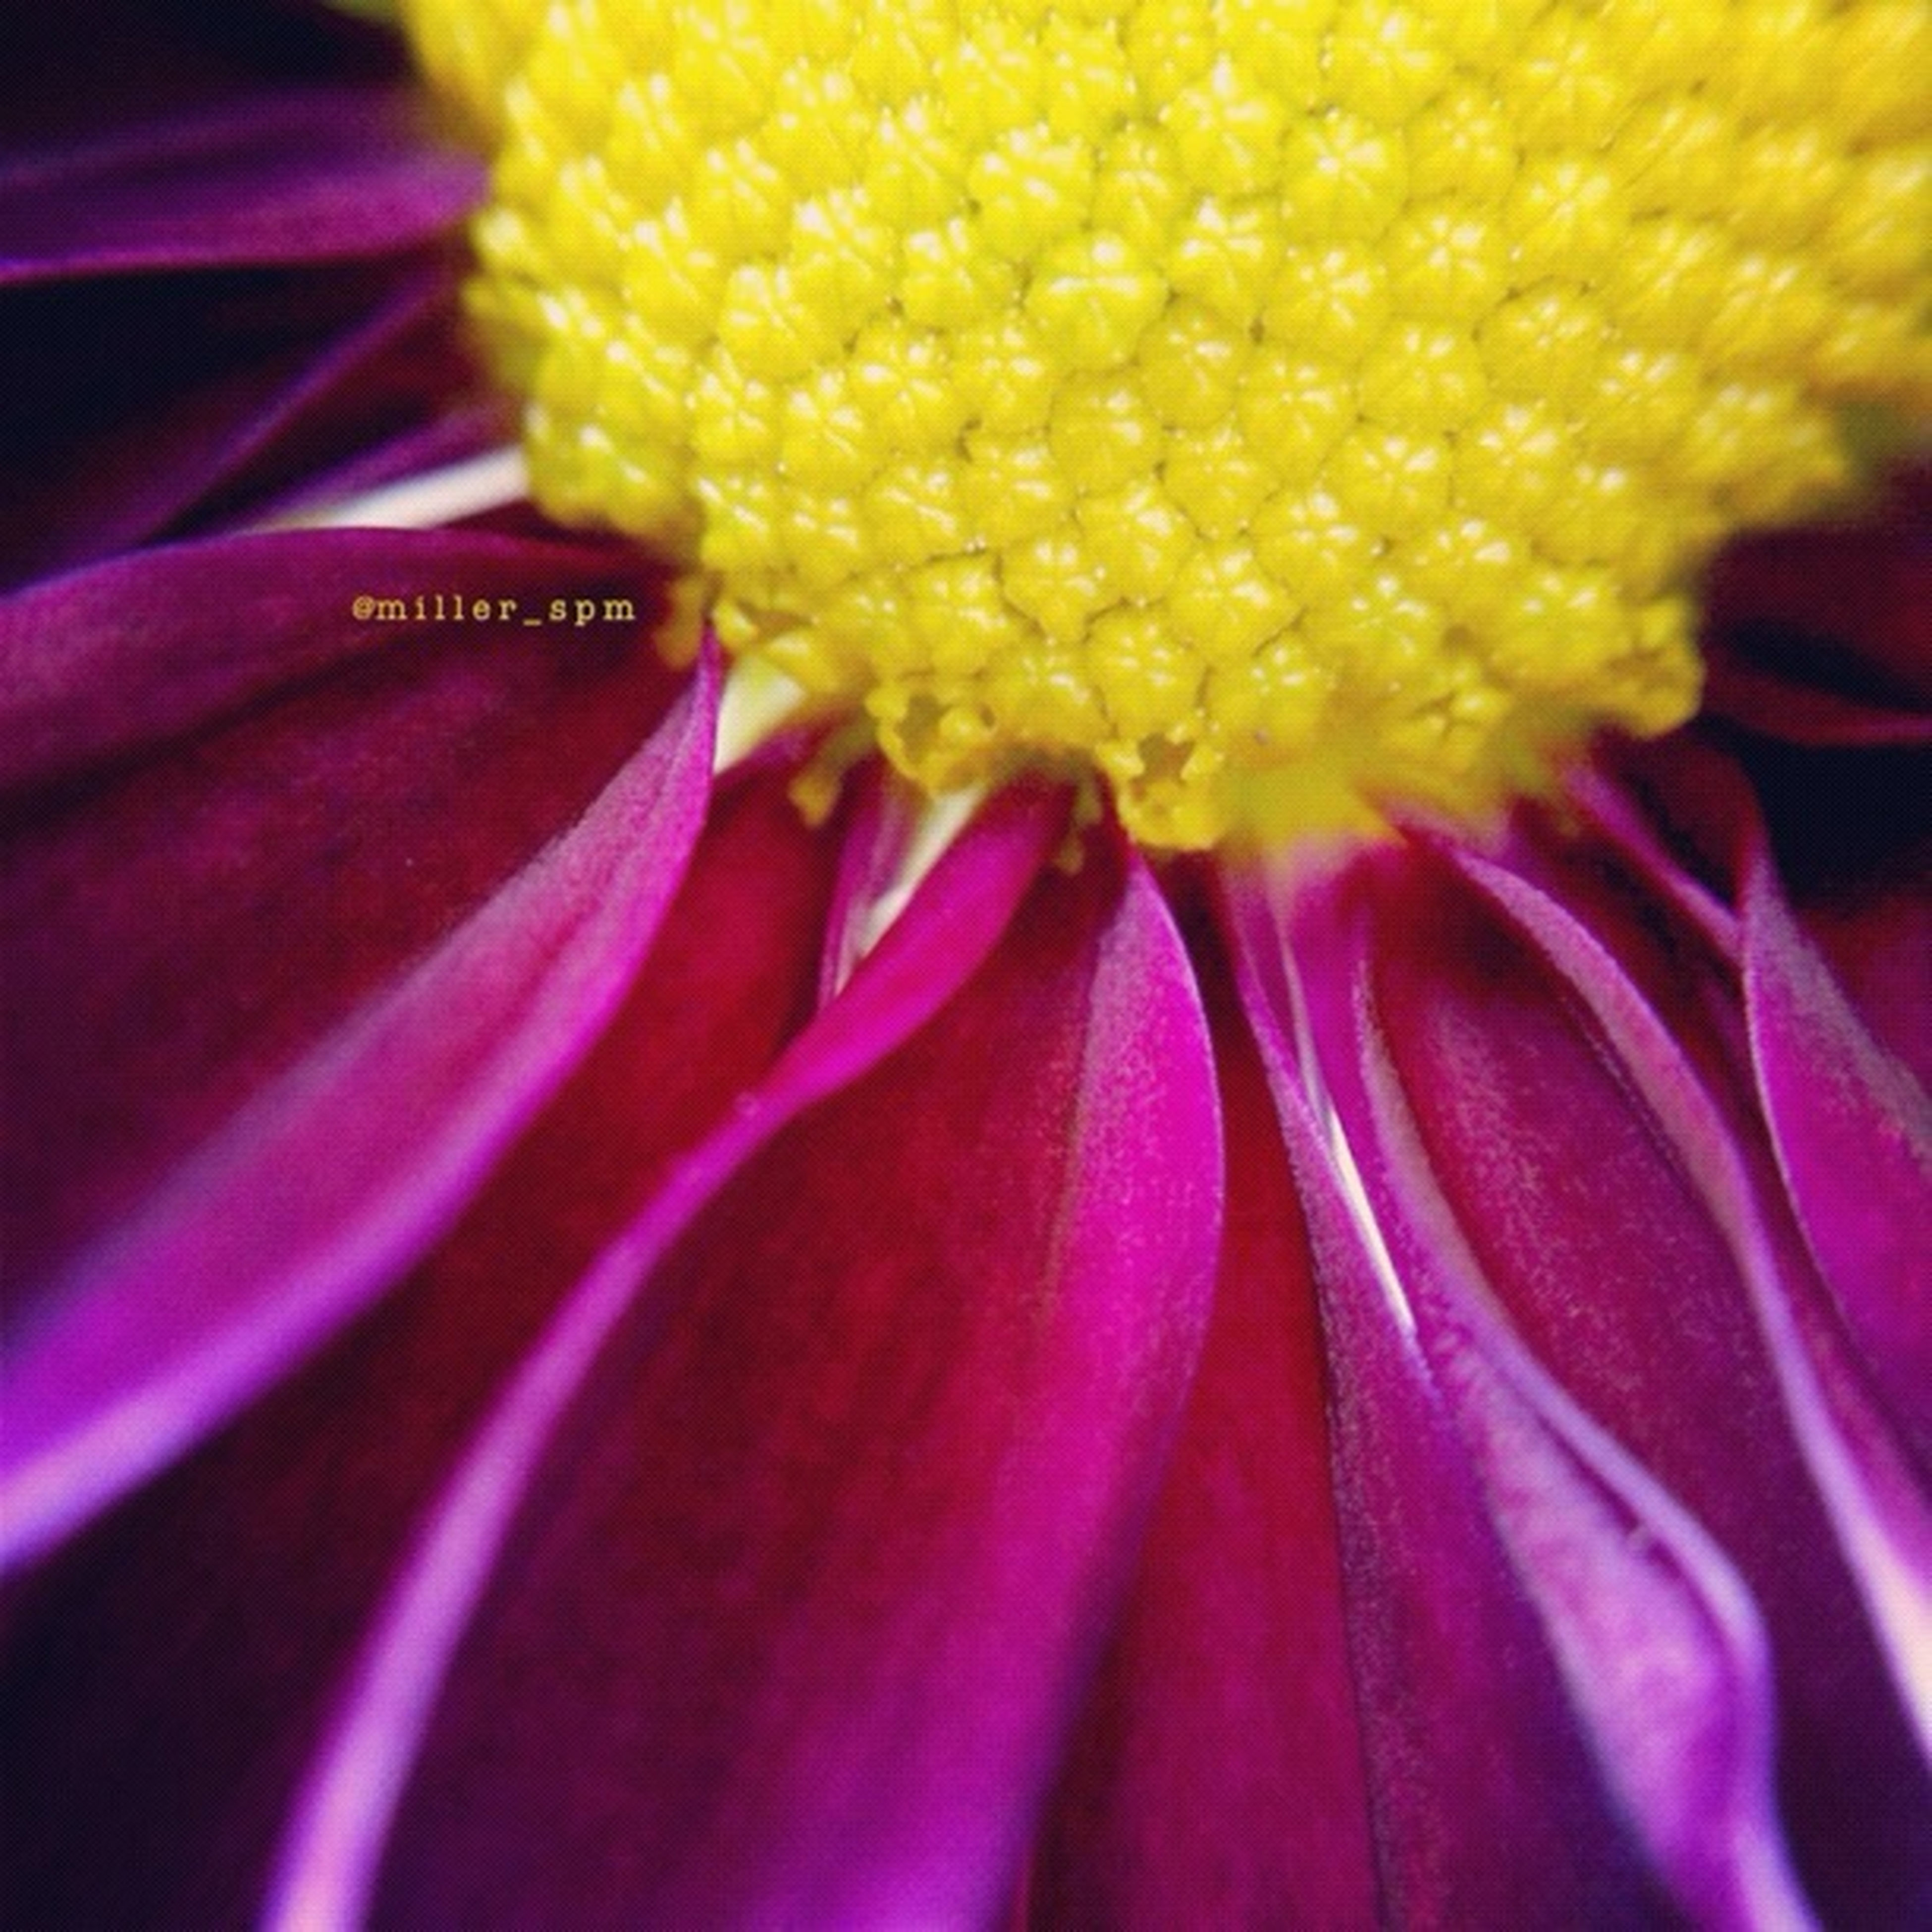 flower, petal, freshness, flower head, yellow, fragility, close-up, purple, full frame, extreme close-up, selective focus, beauty in nature, backgrounds, macro, detail, pollen, single flower, extreme close up, nature, stamen